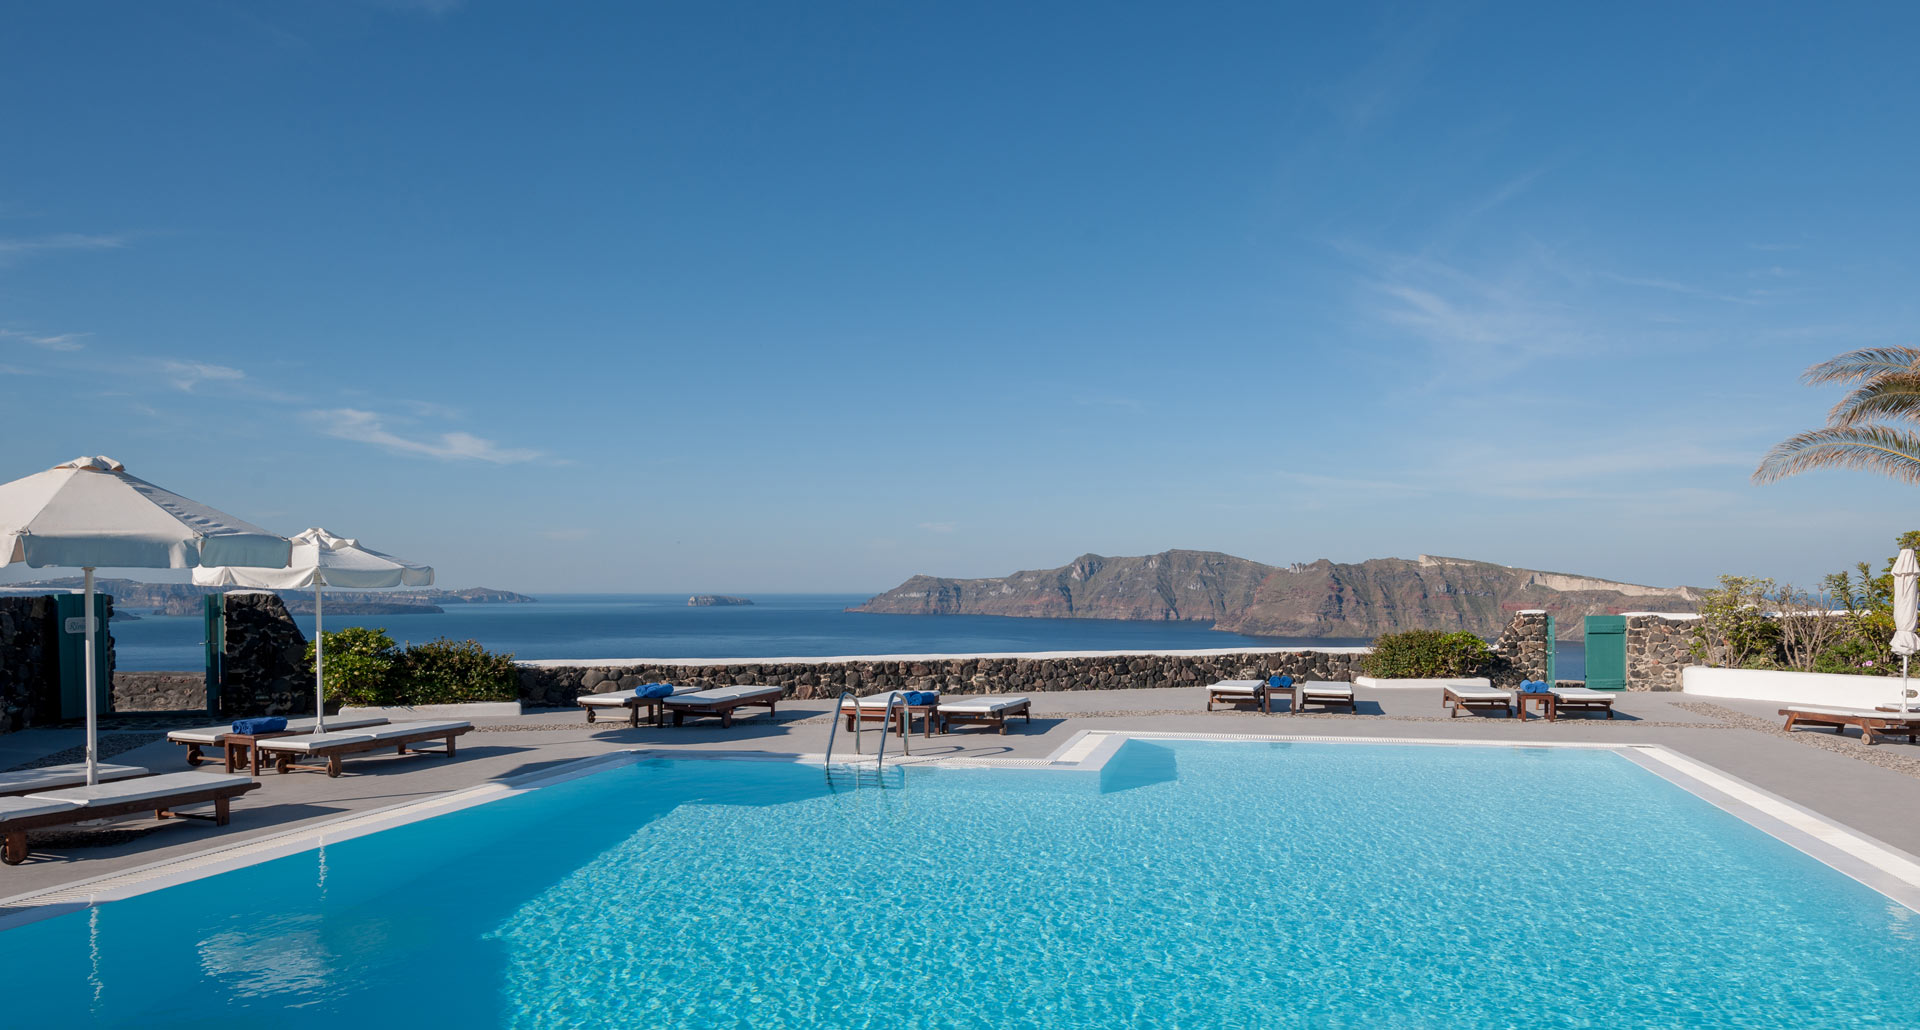 Strogili Hotel with pool in Oia Santorini